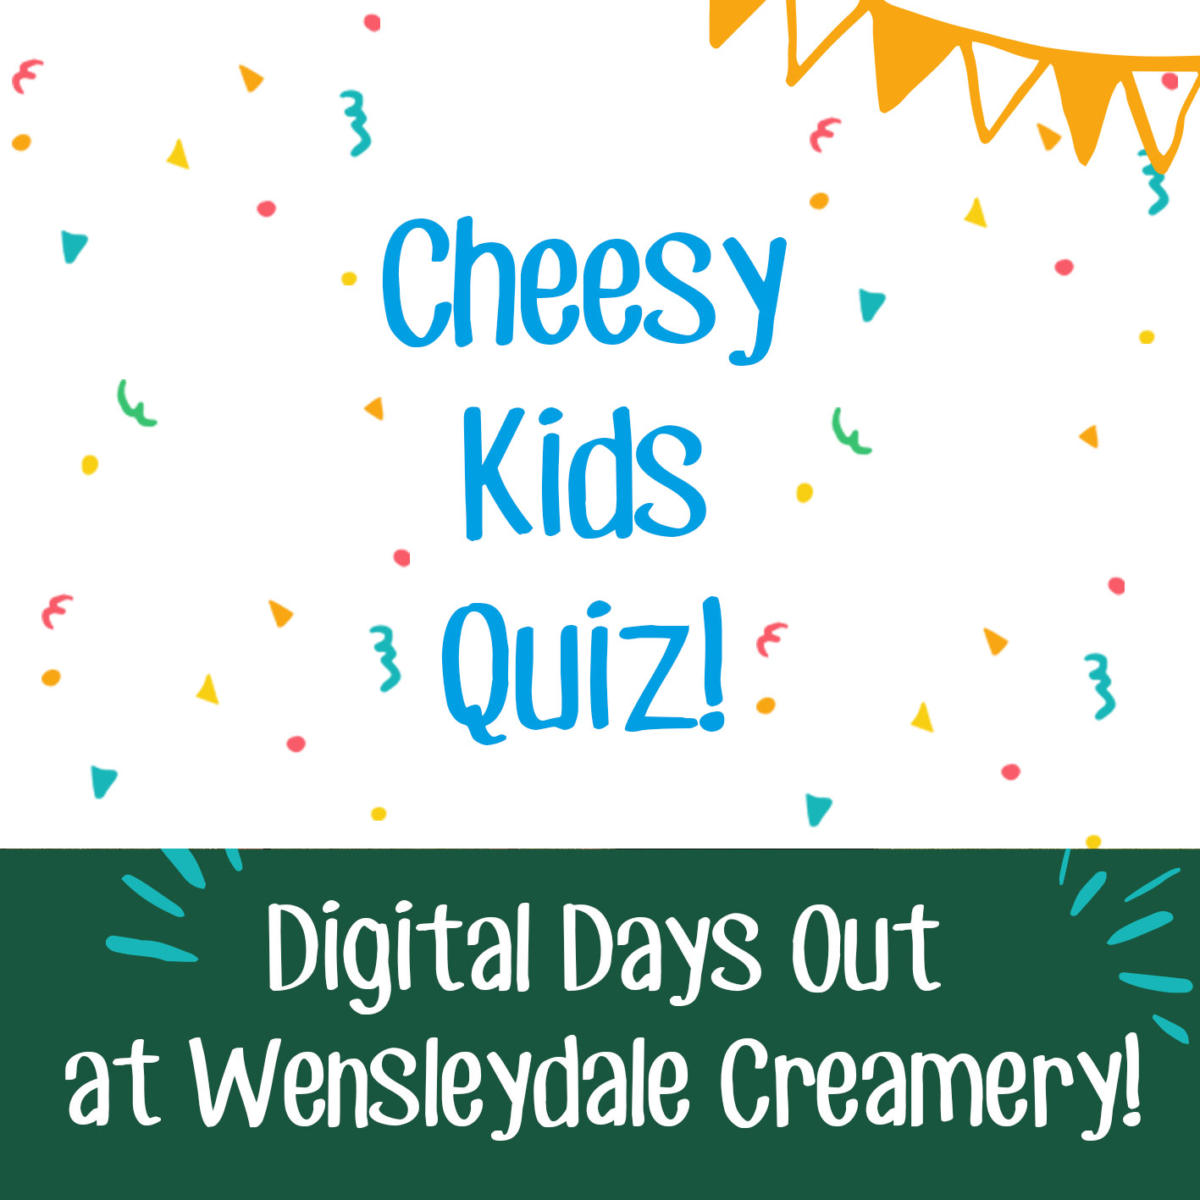 Digital Days Out Thursday 9th April: Cheesy Kids Quiz!